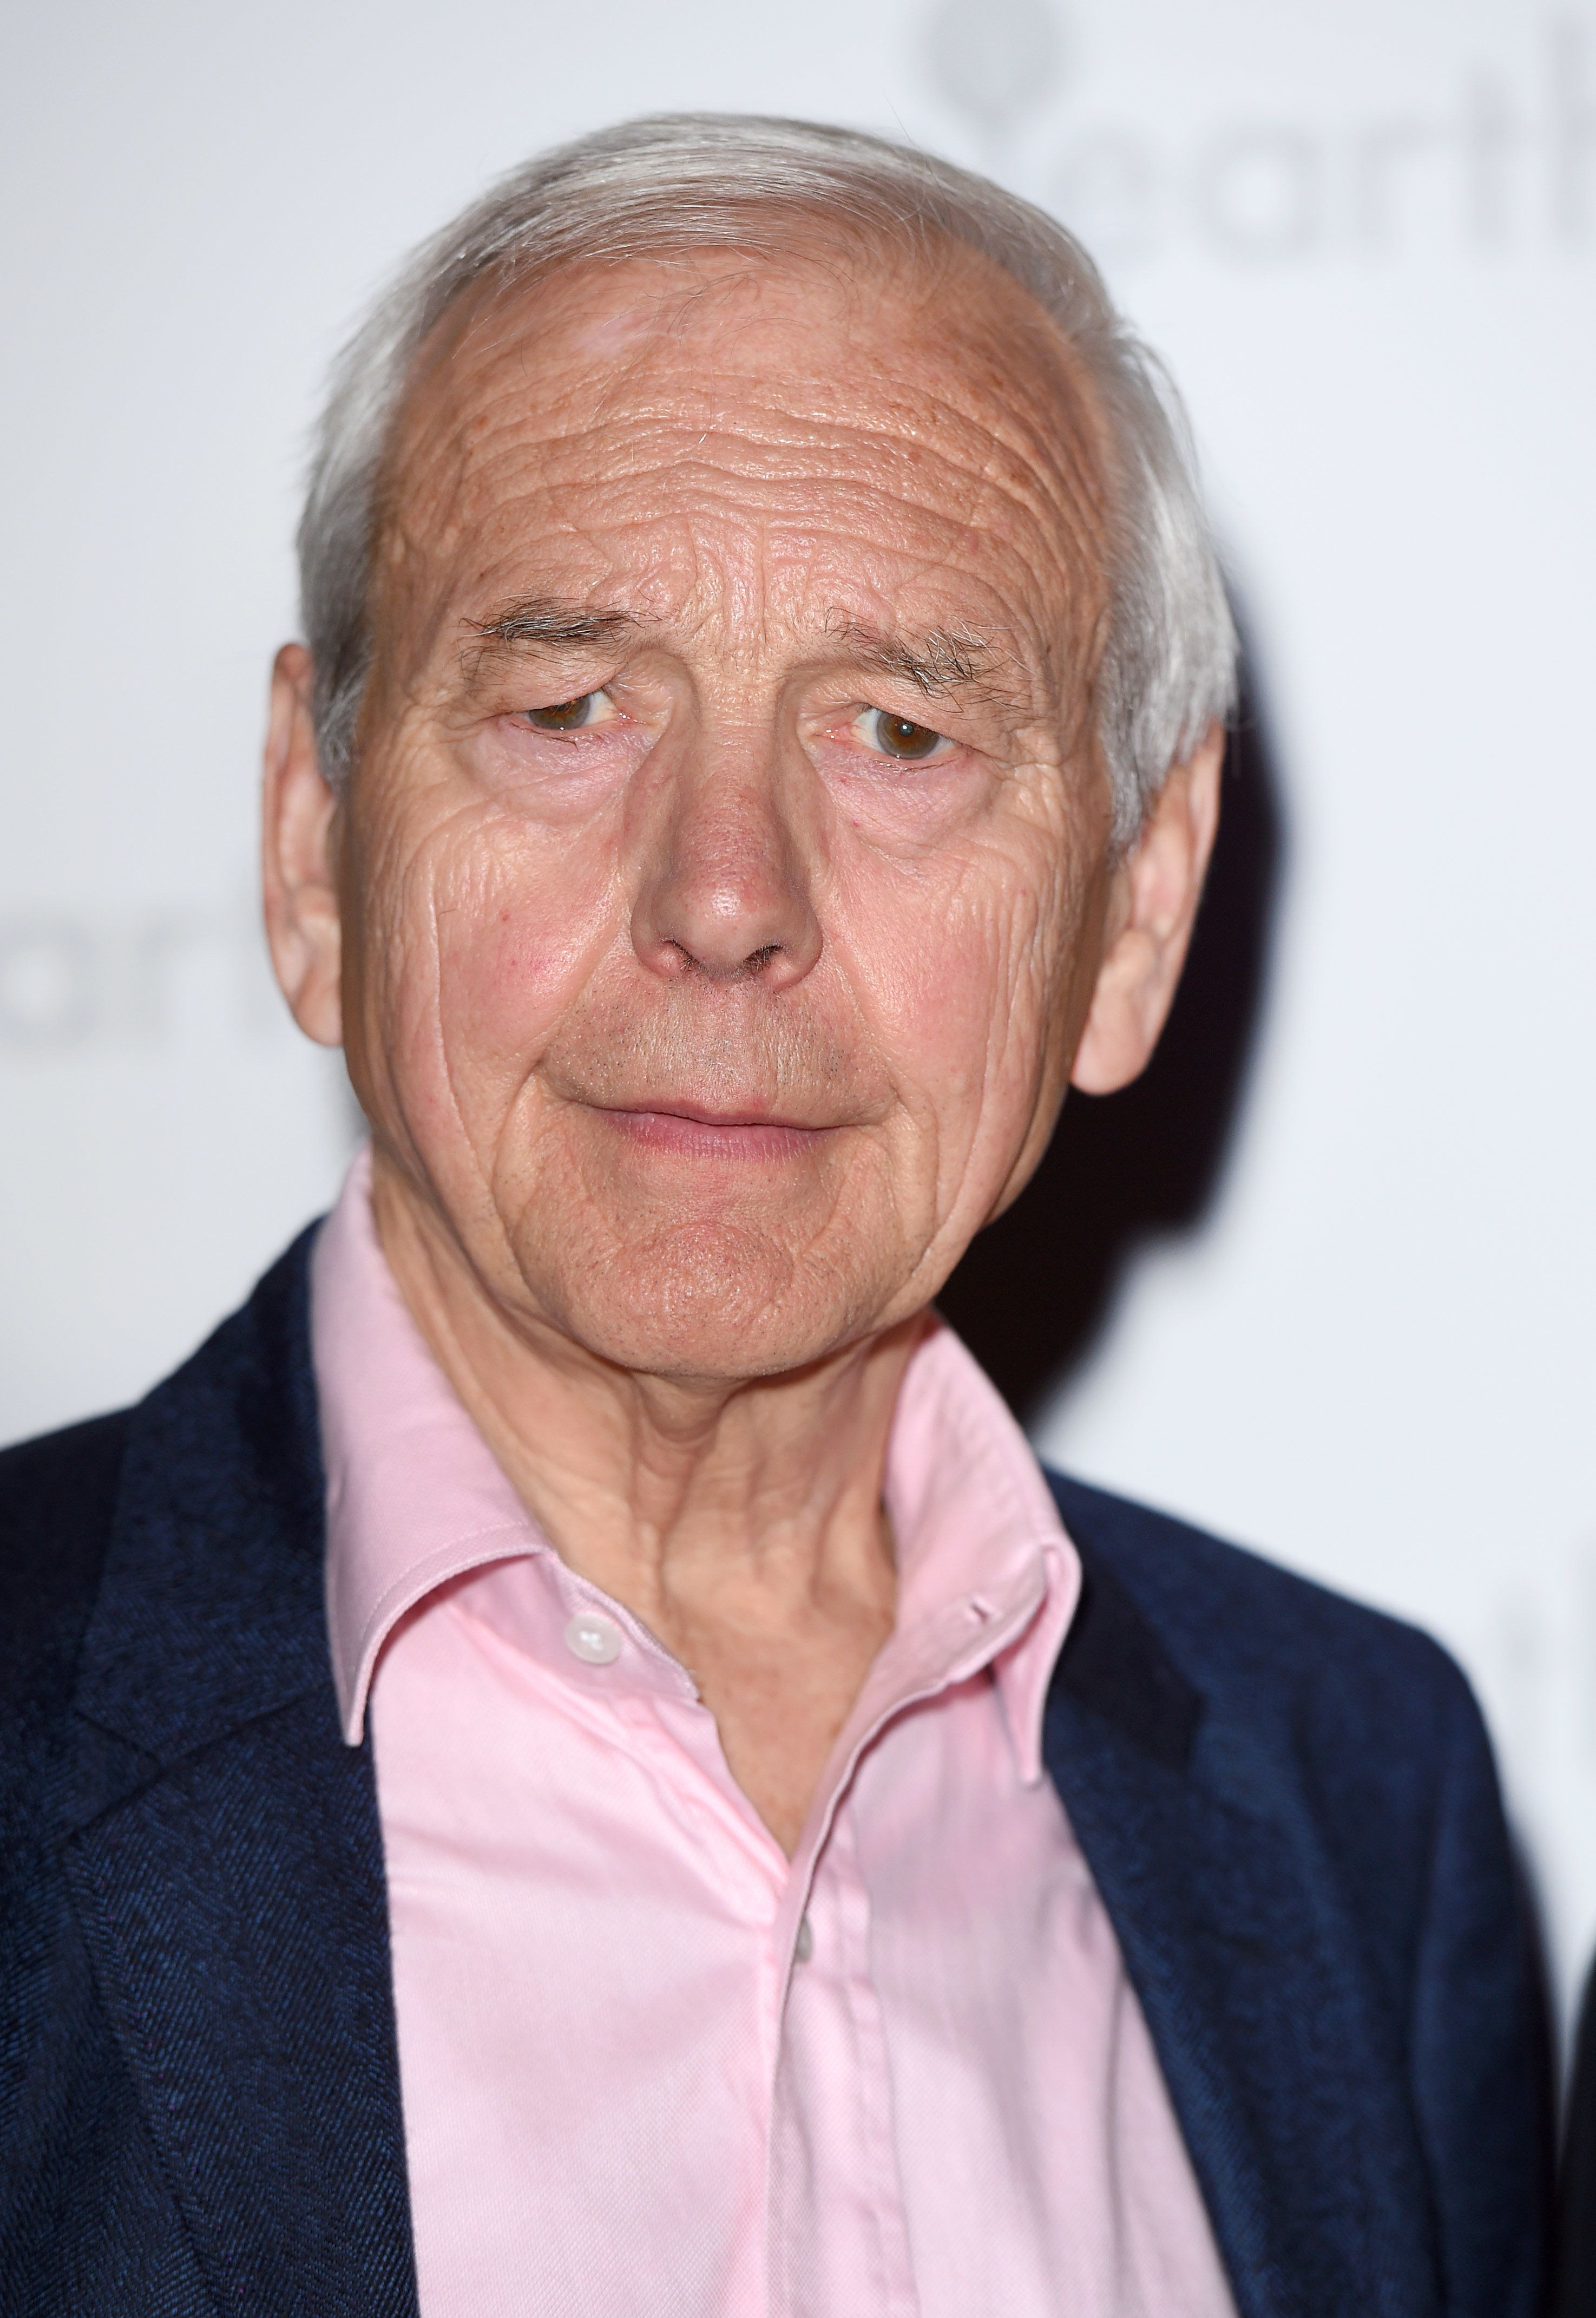 John Humphrys joked with a male colleague about Carrie Gracie's